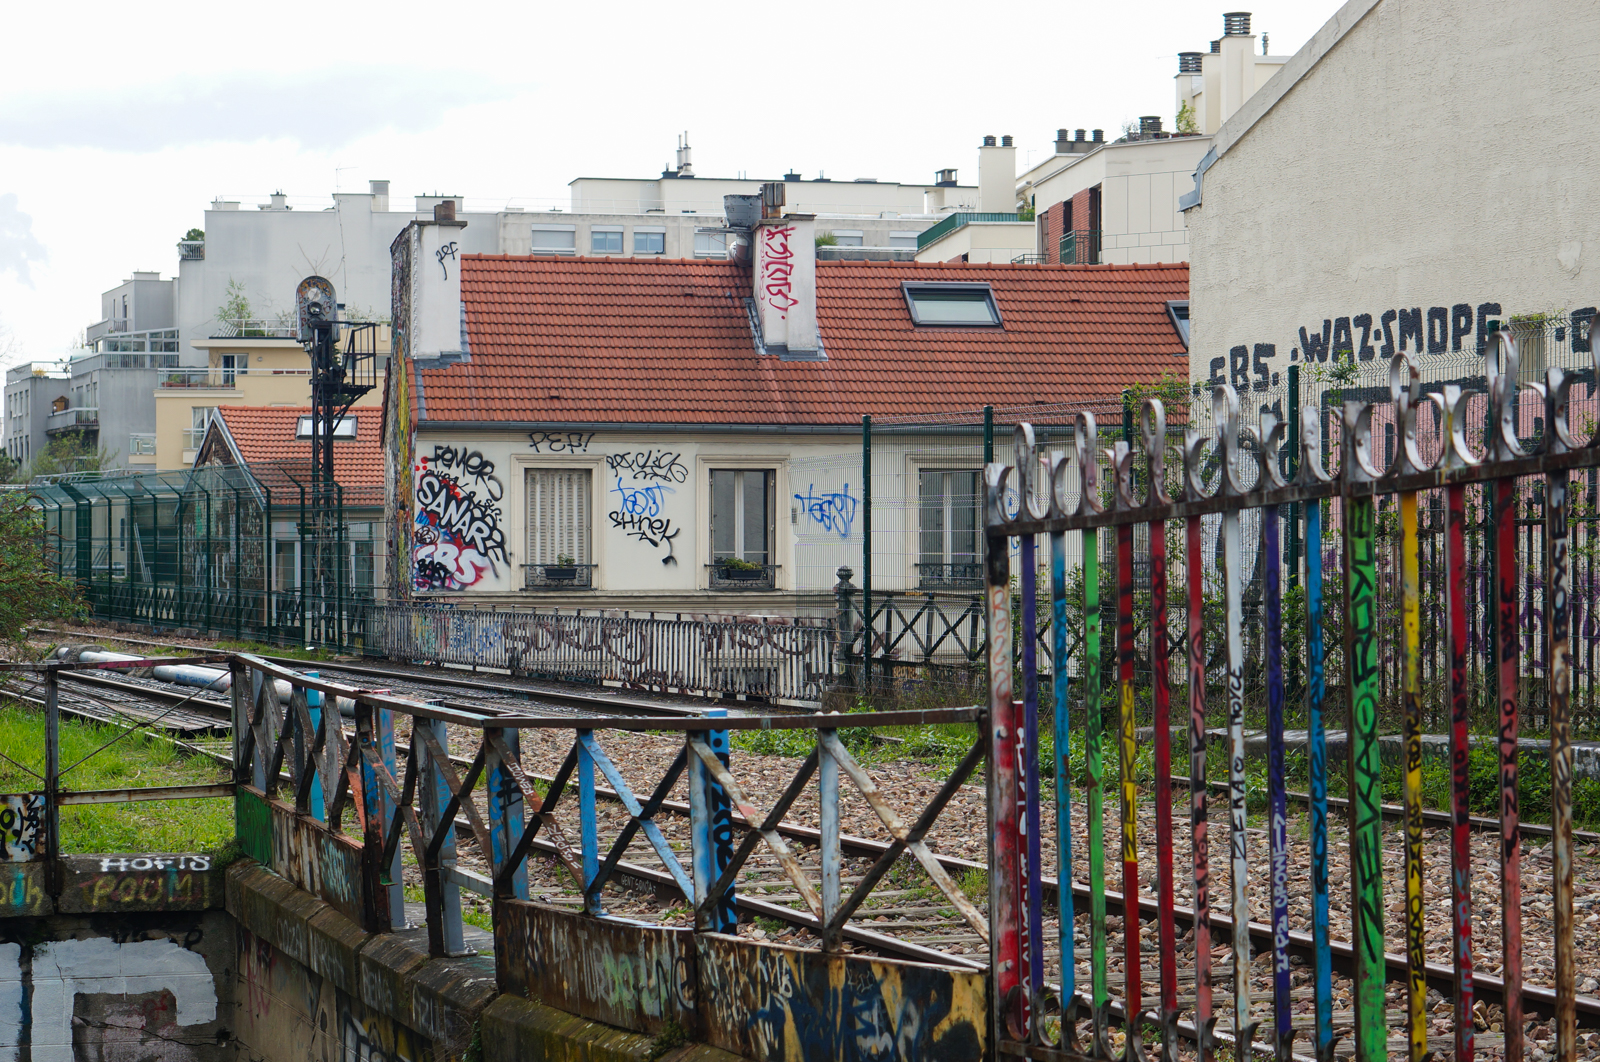 paris 20, balade paris 20, paris underground, paris alternatif, paris insolite, découvrir paris 20, que faire paris 20, balade originale paris 20, petite ceinture, petite cienture paris, street art paris, street art paris 20